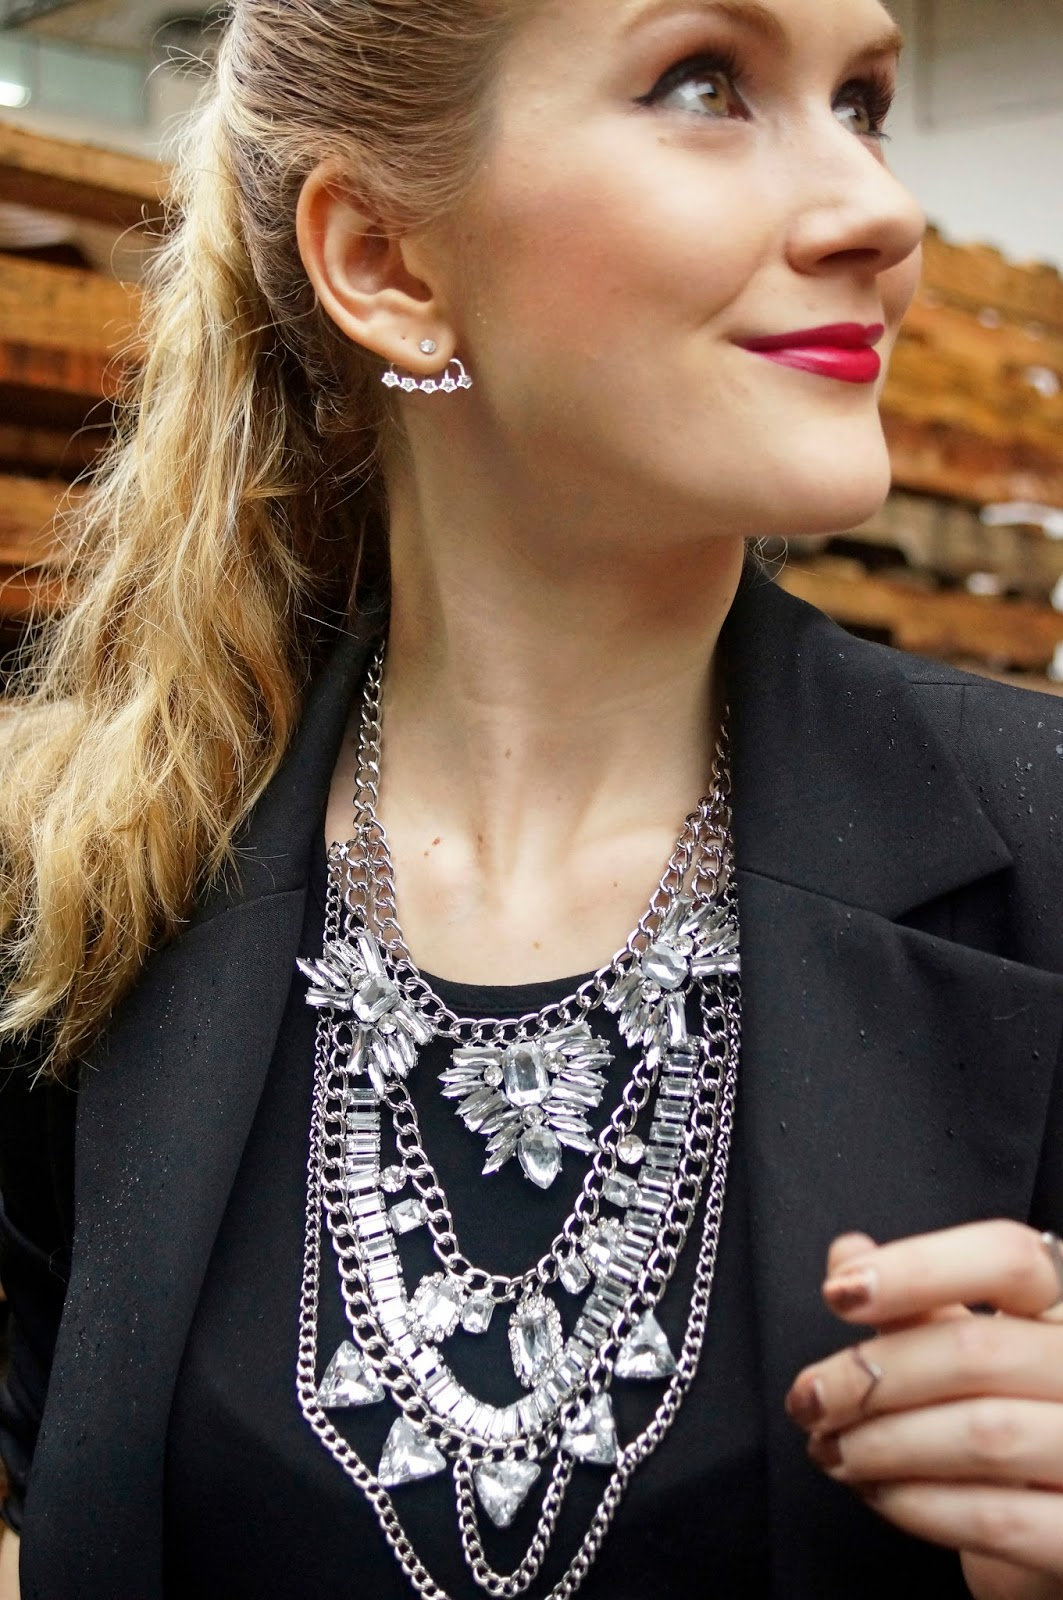 This statement necklace from Happiness Boutique is the perfect touch of glam!